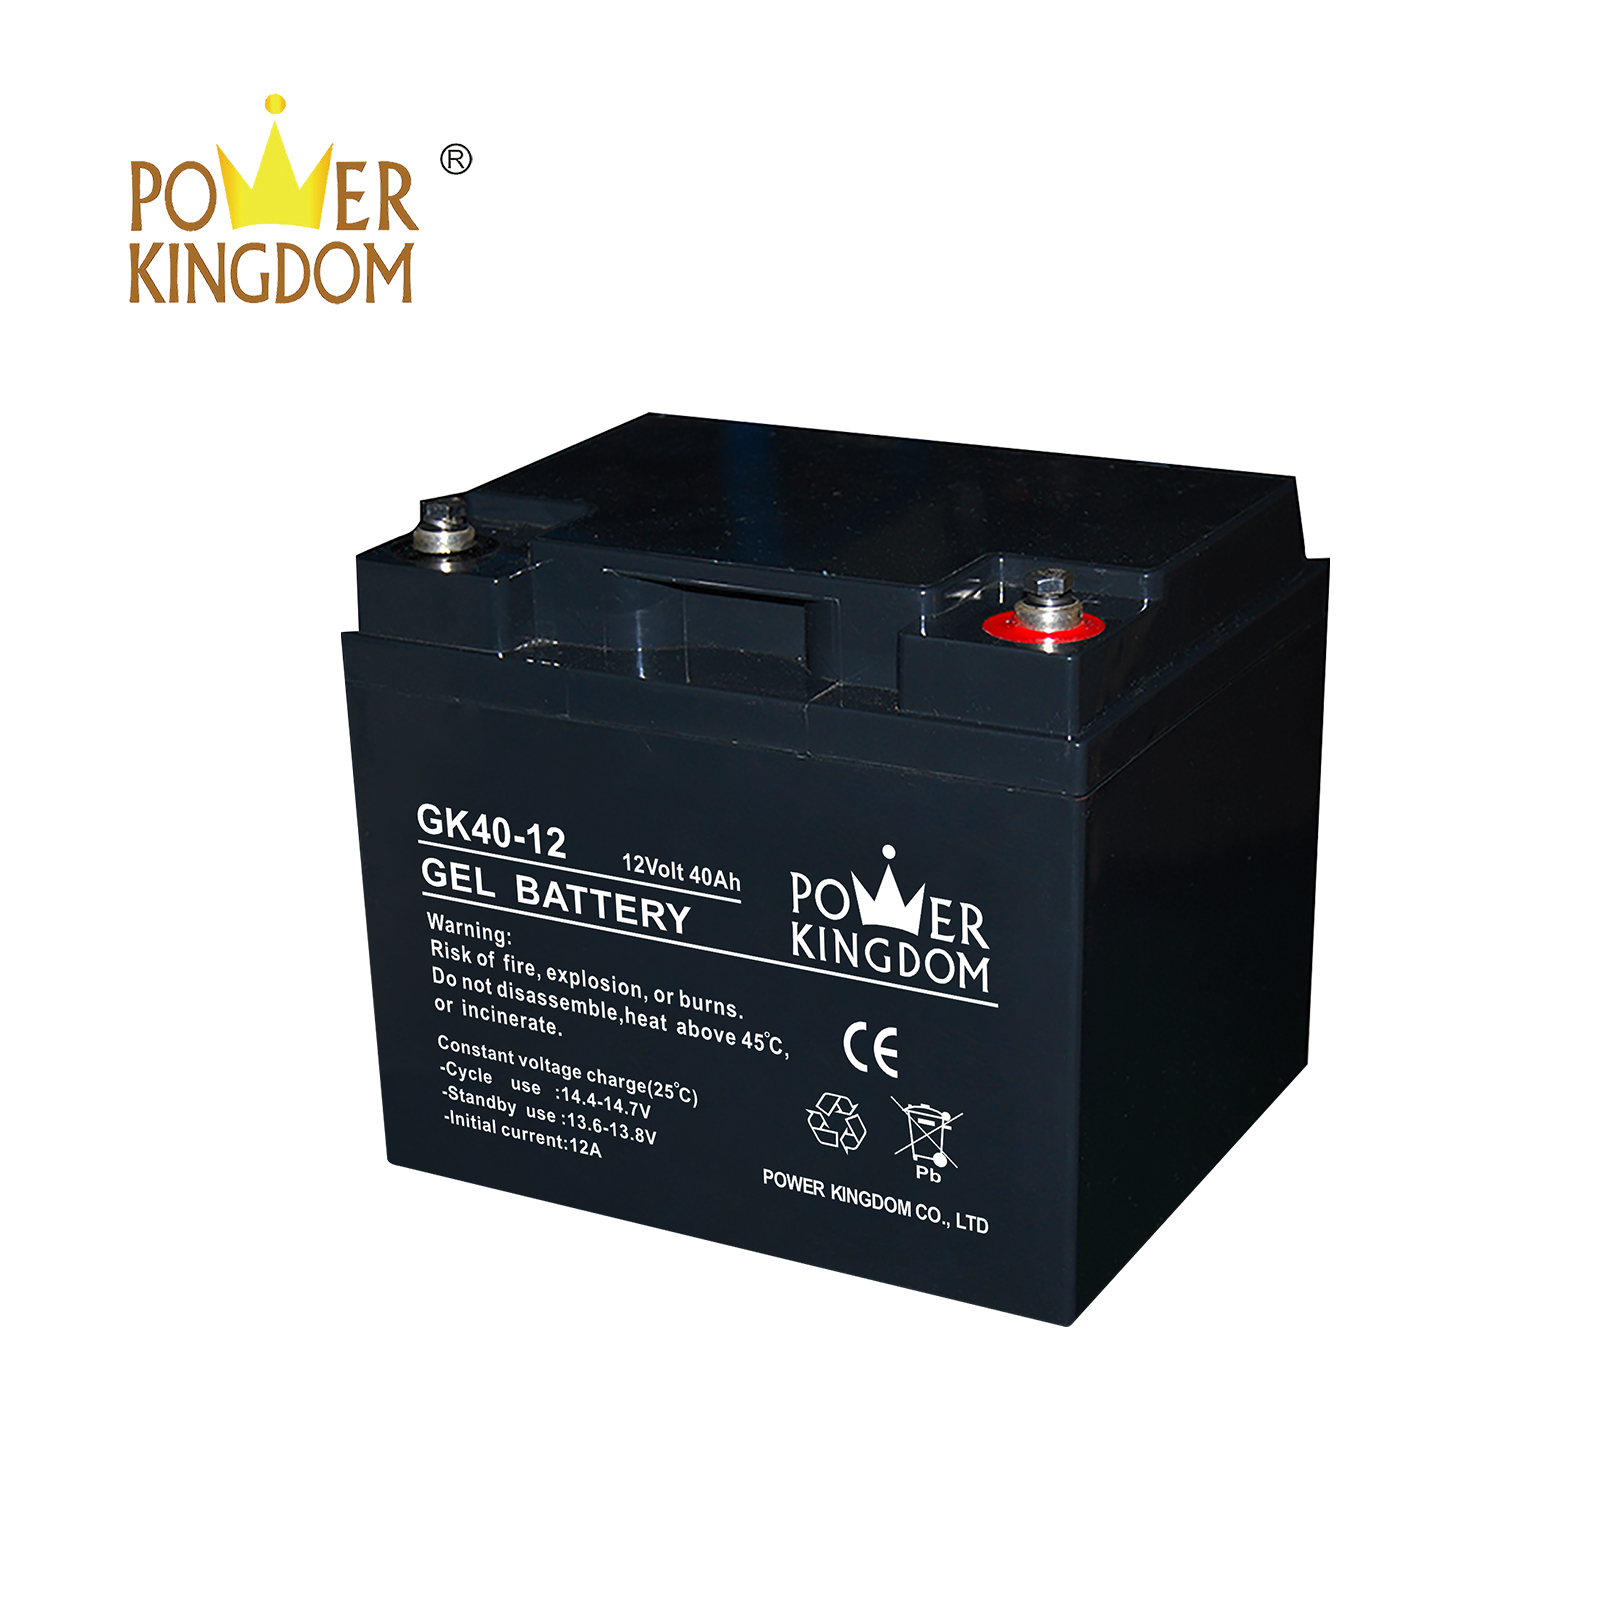 high consistency 12v lead acid battery design medical equipment-2